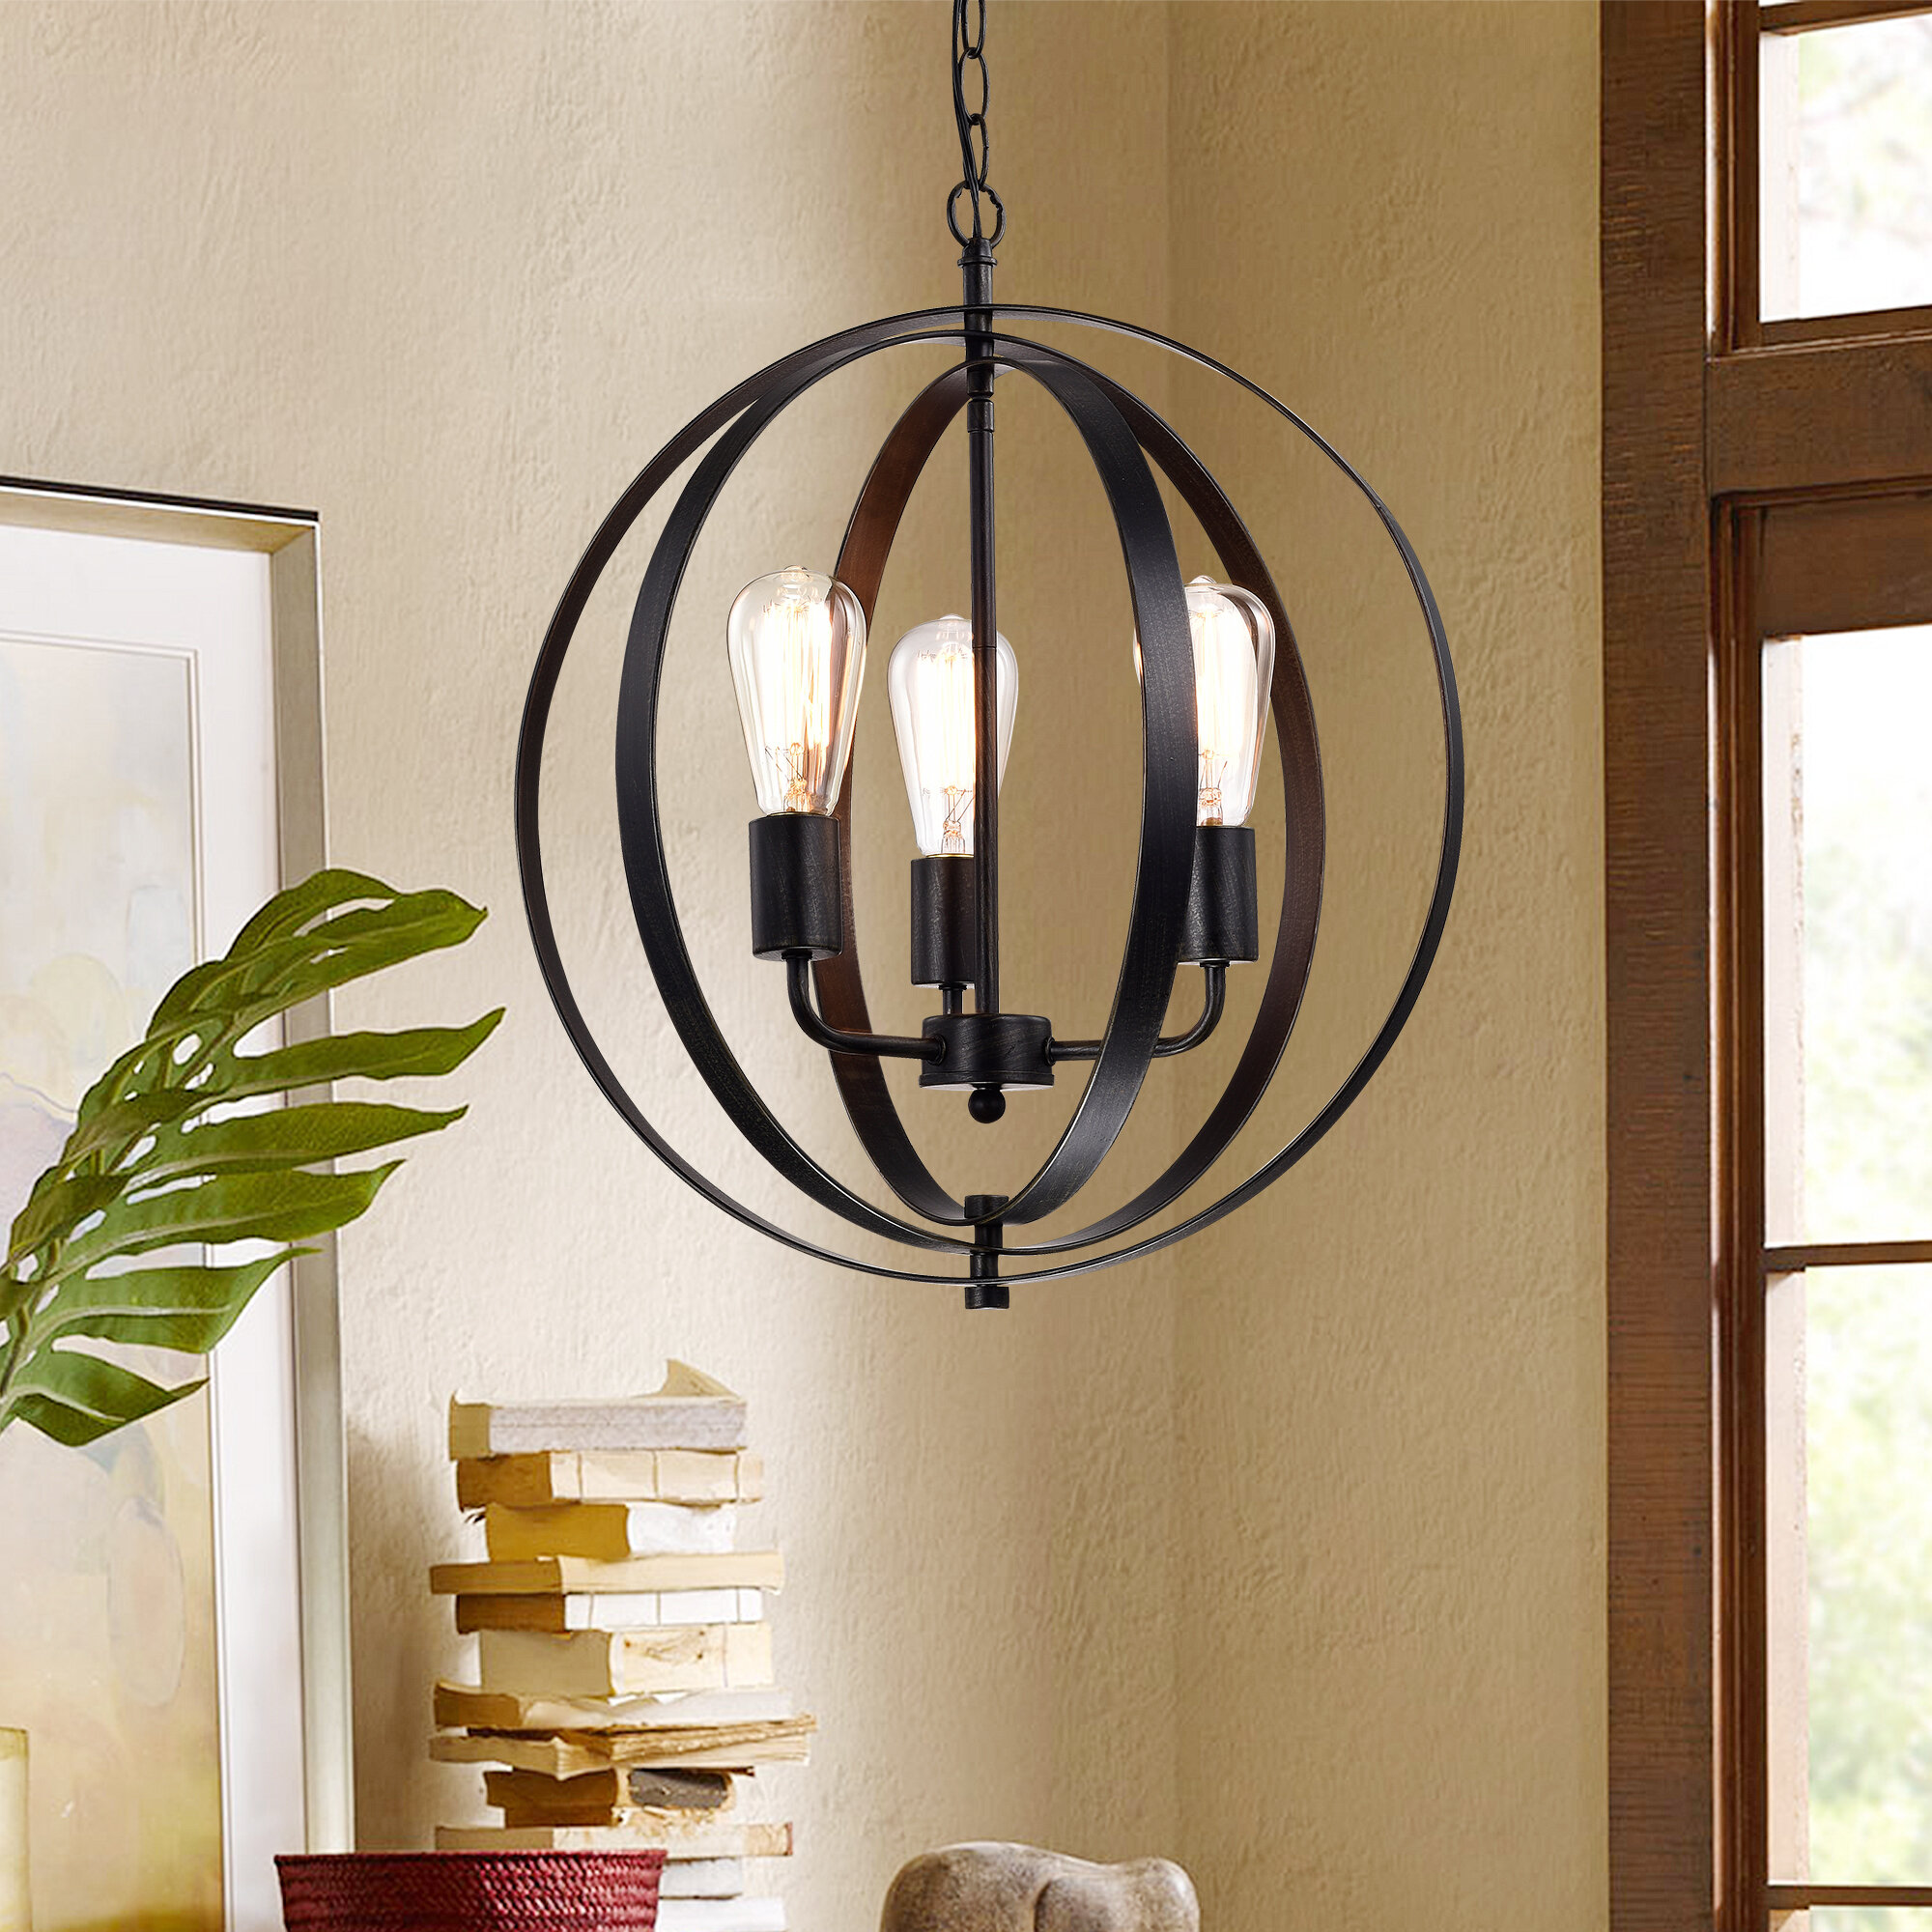 Williston Forge Chandeliers You Ll Love In 2021 Wayfair Ca